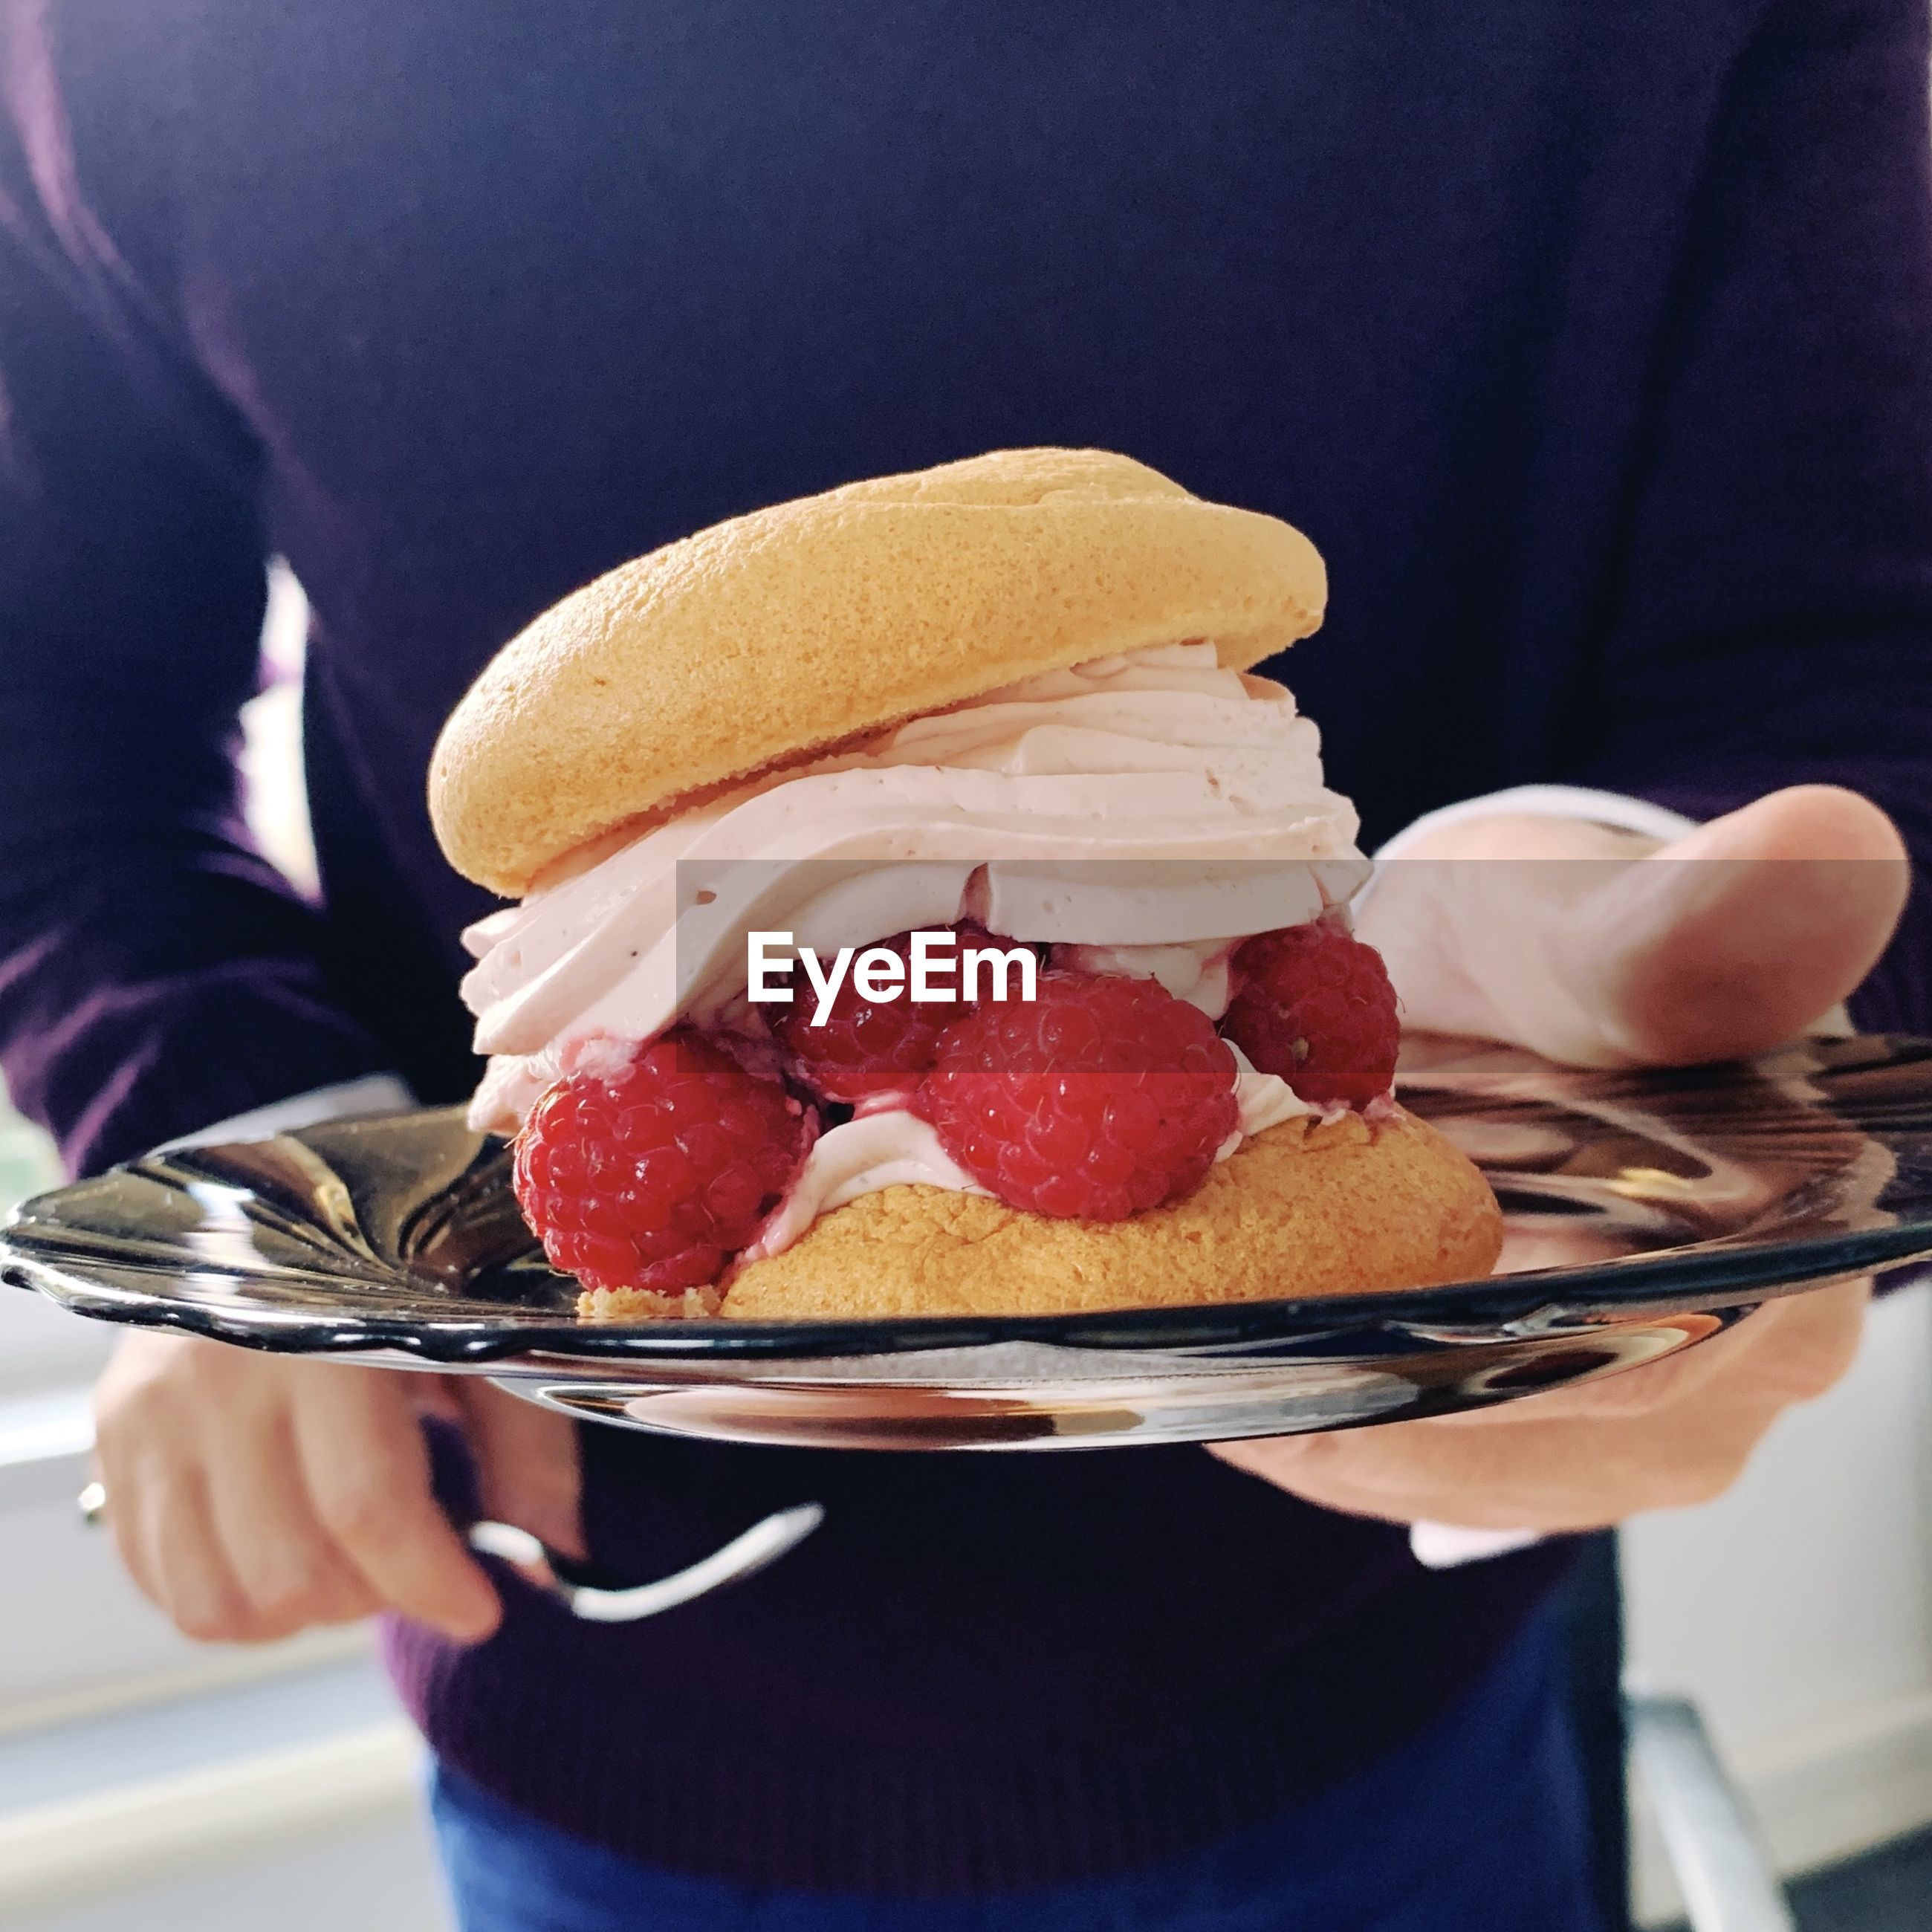 MIDSECTION OF PERSON HOLDING ICE CREAM IN CAKE